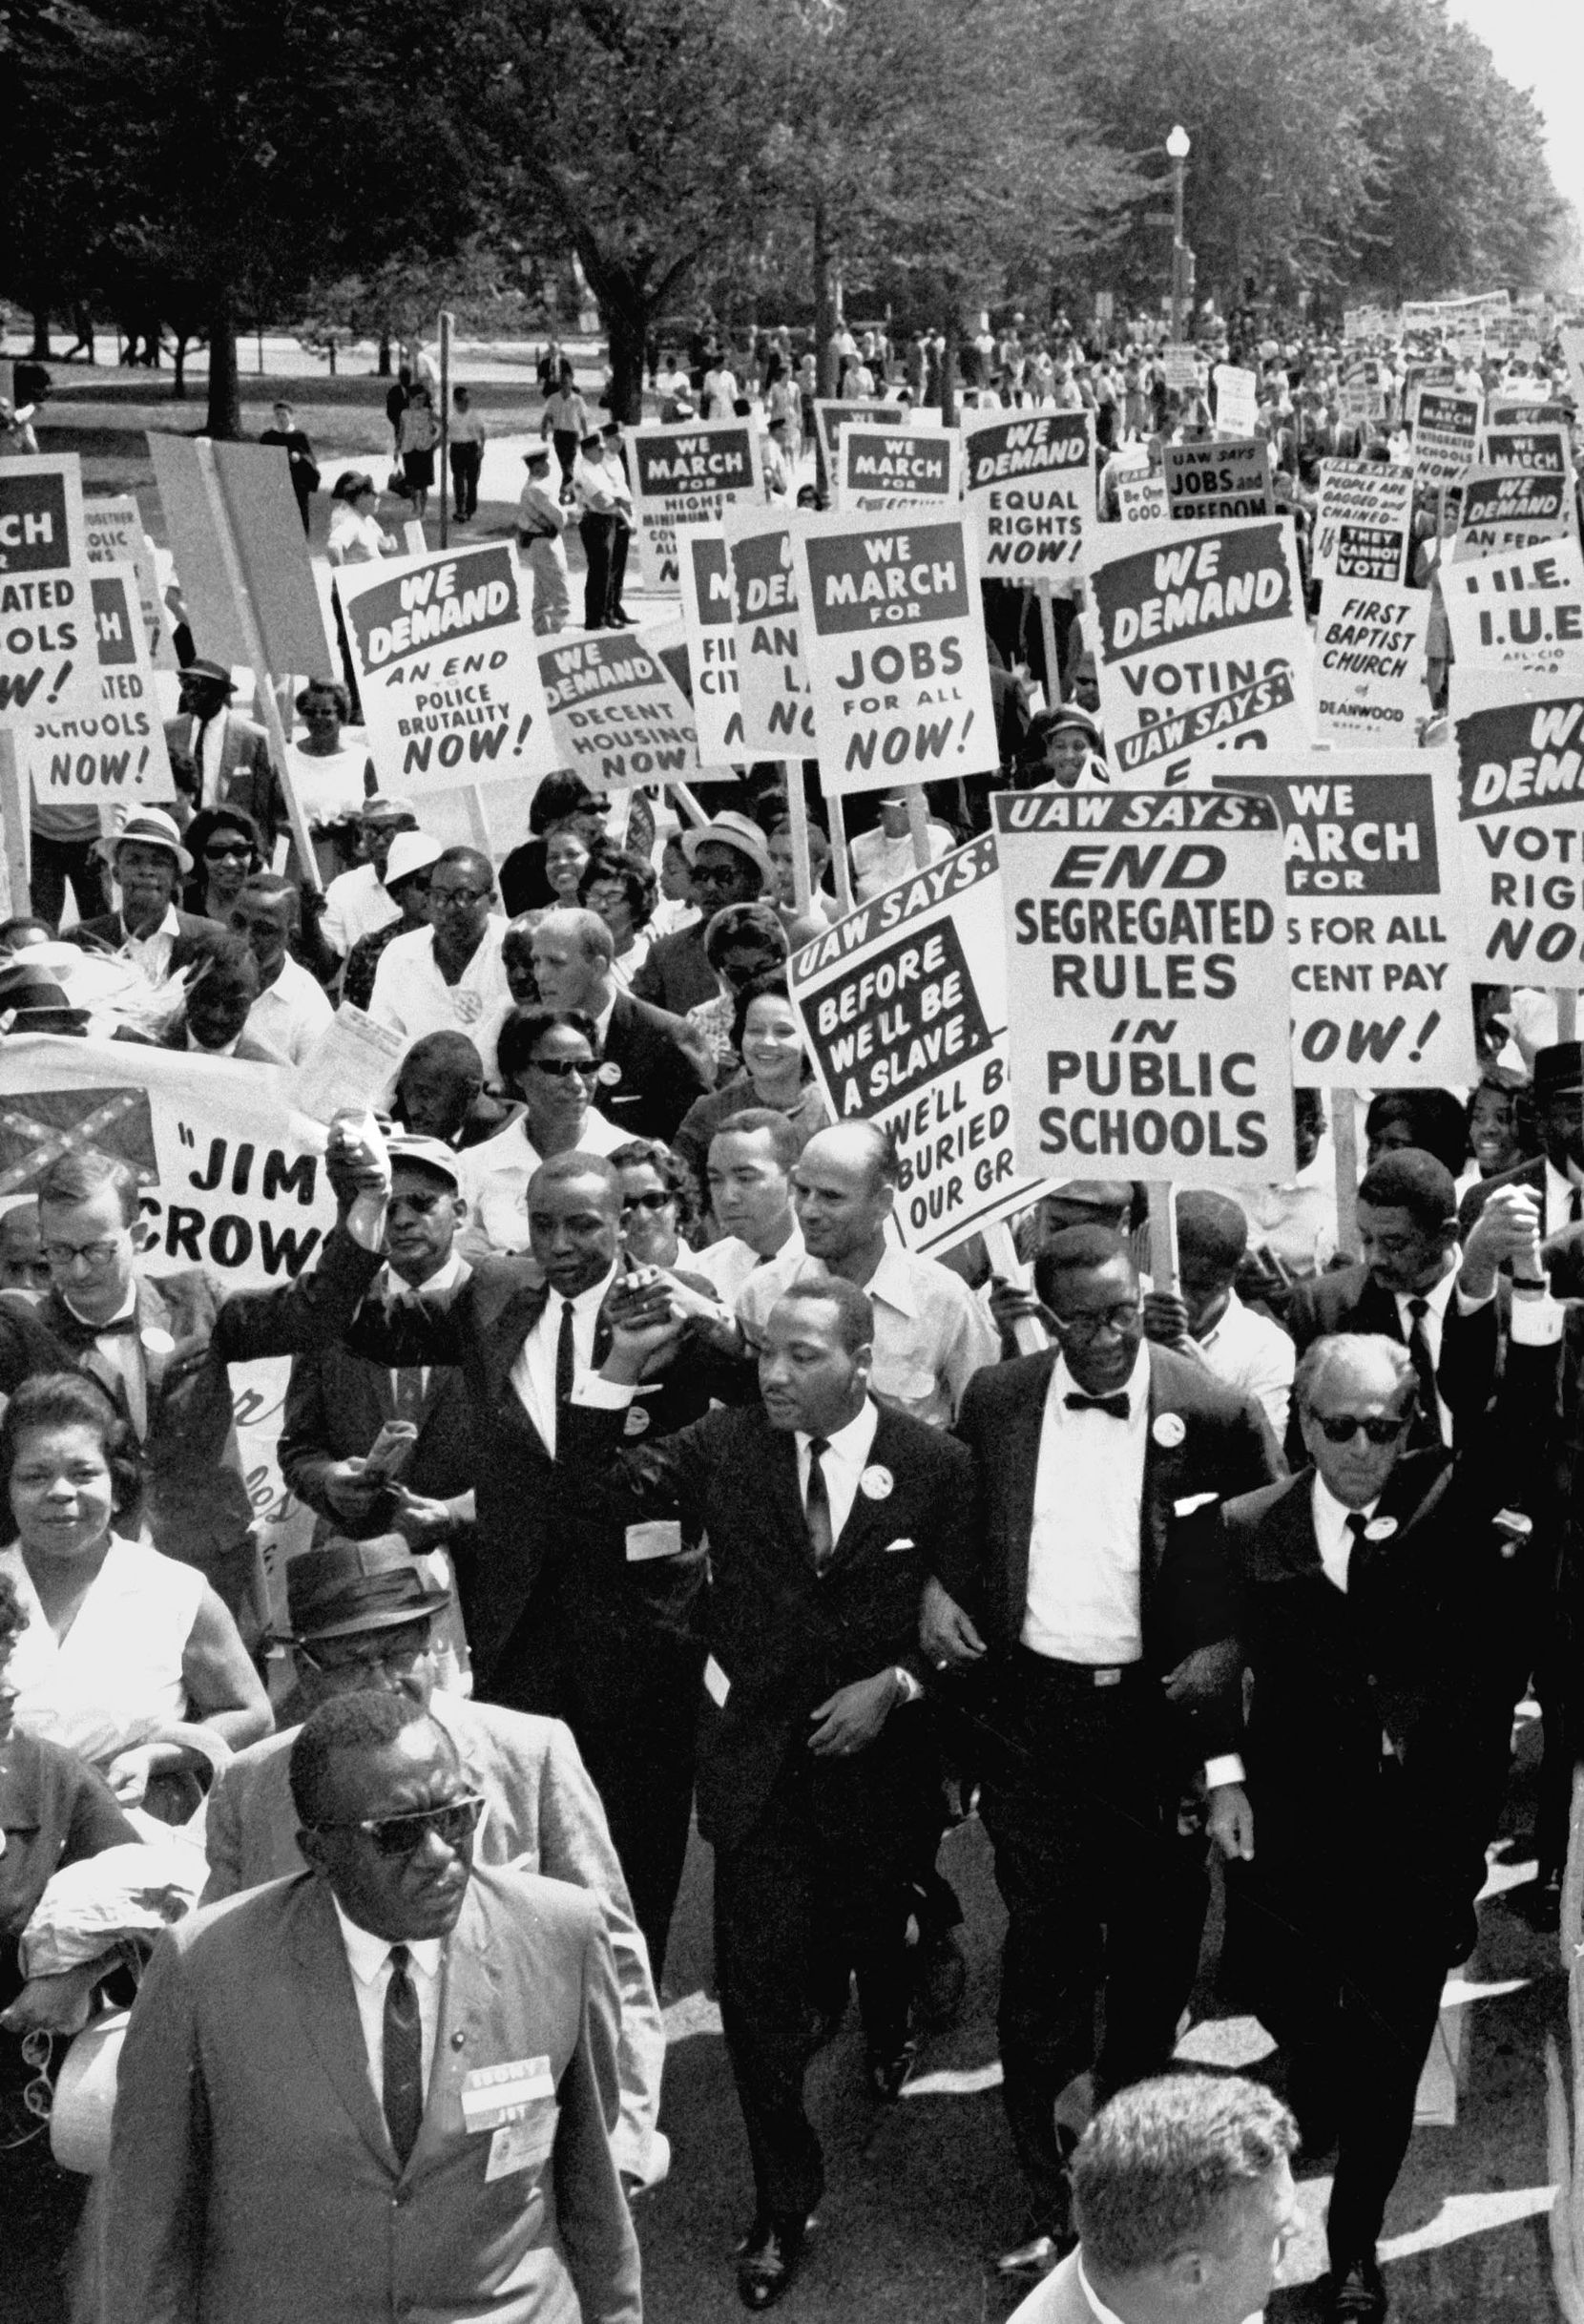 Dr. Martin Luther King Jr. (center front) led a sea of protesters during the March on Washington on Aug. 28, 1963.